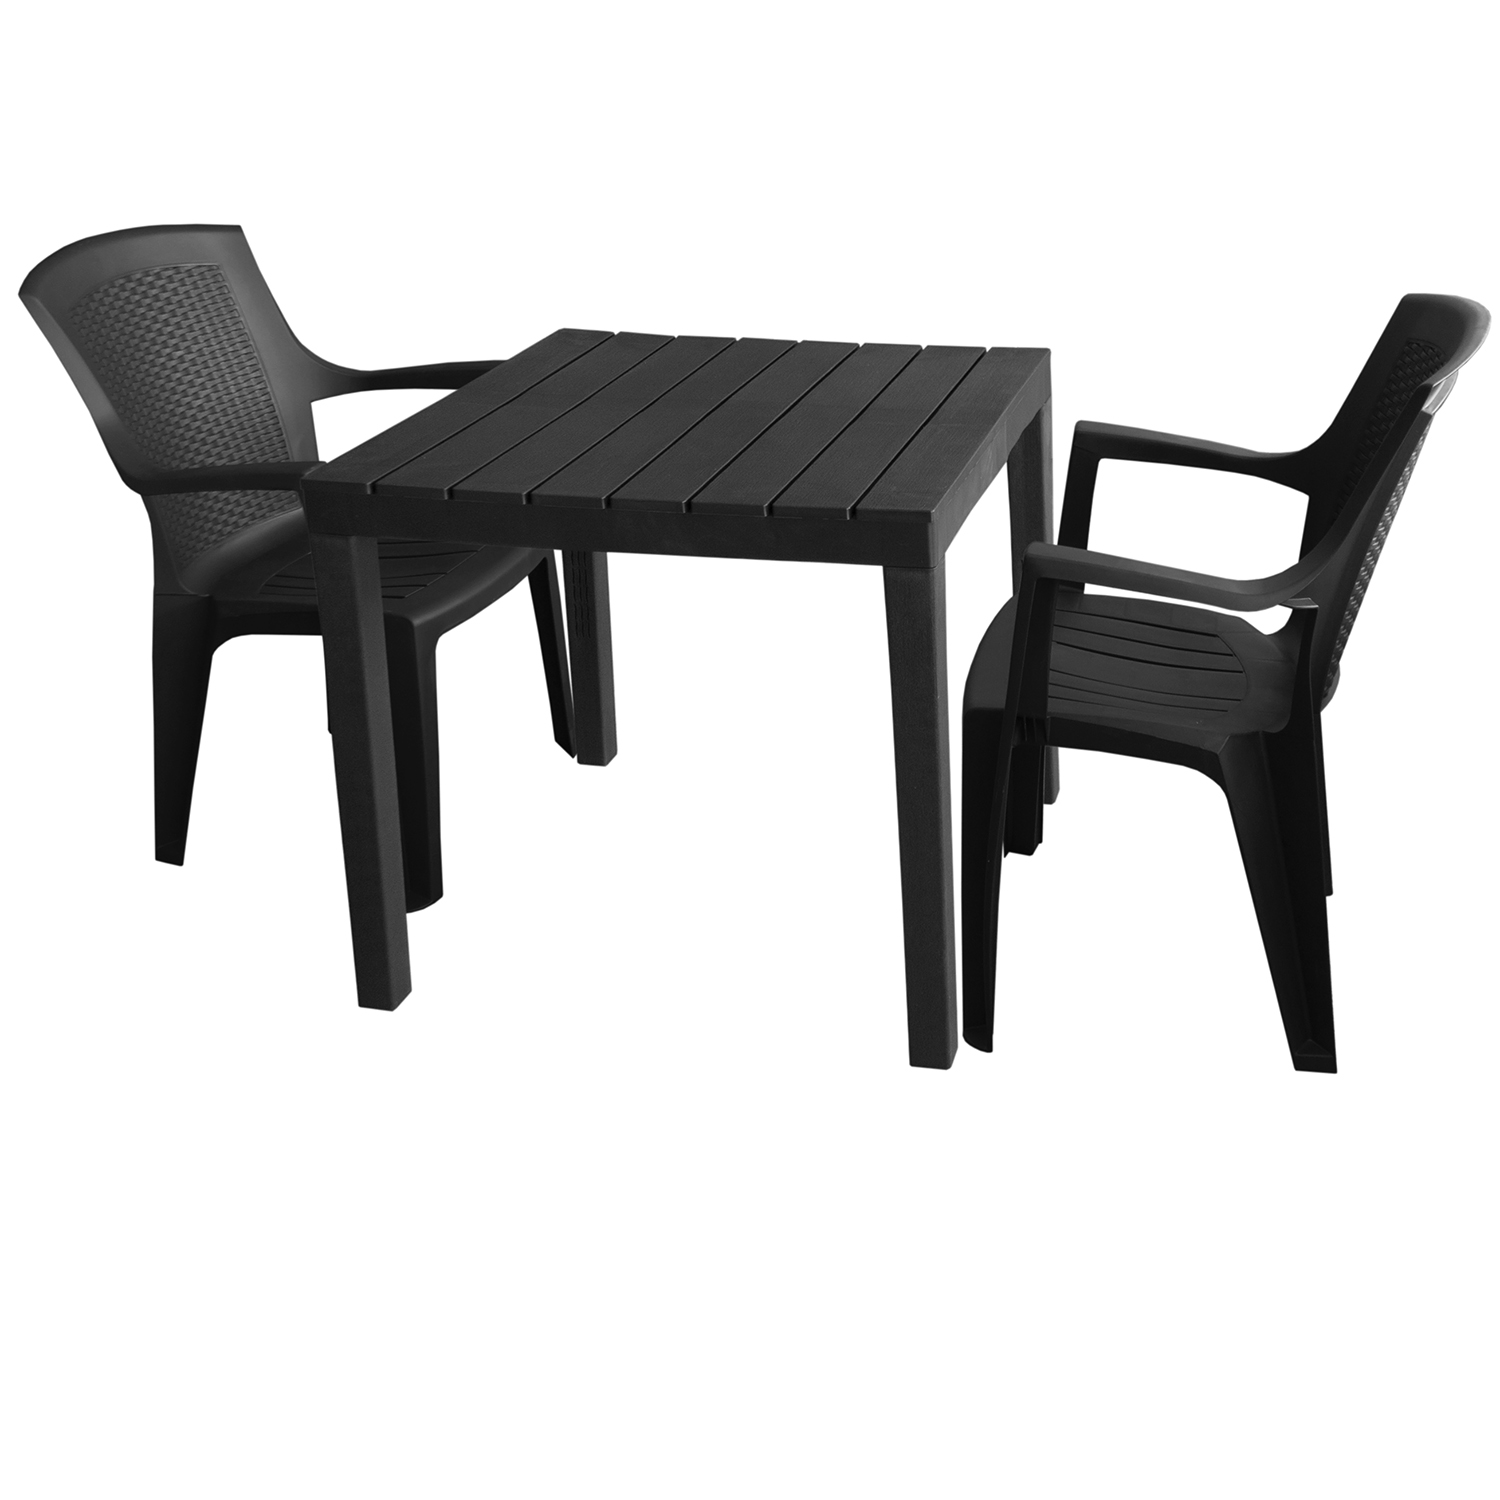 gartenm bel set gartentisch bali 78x78cm 2x stapelstuhl eden anthrazit garten bistro und. Black Bedroom Furniture Sets. Home Design Ideas